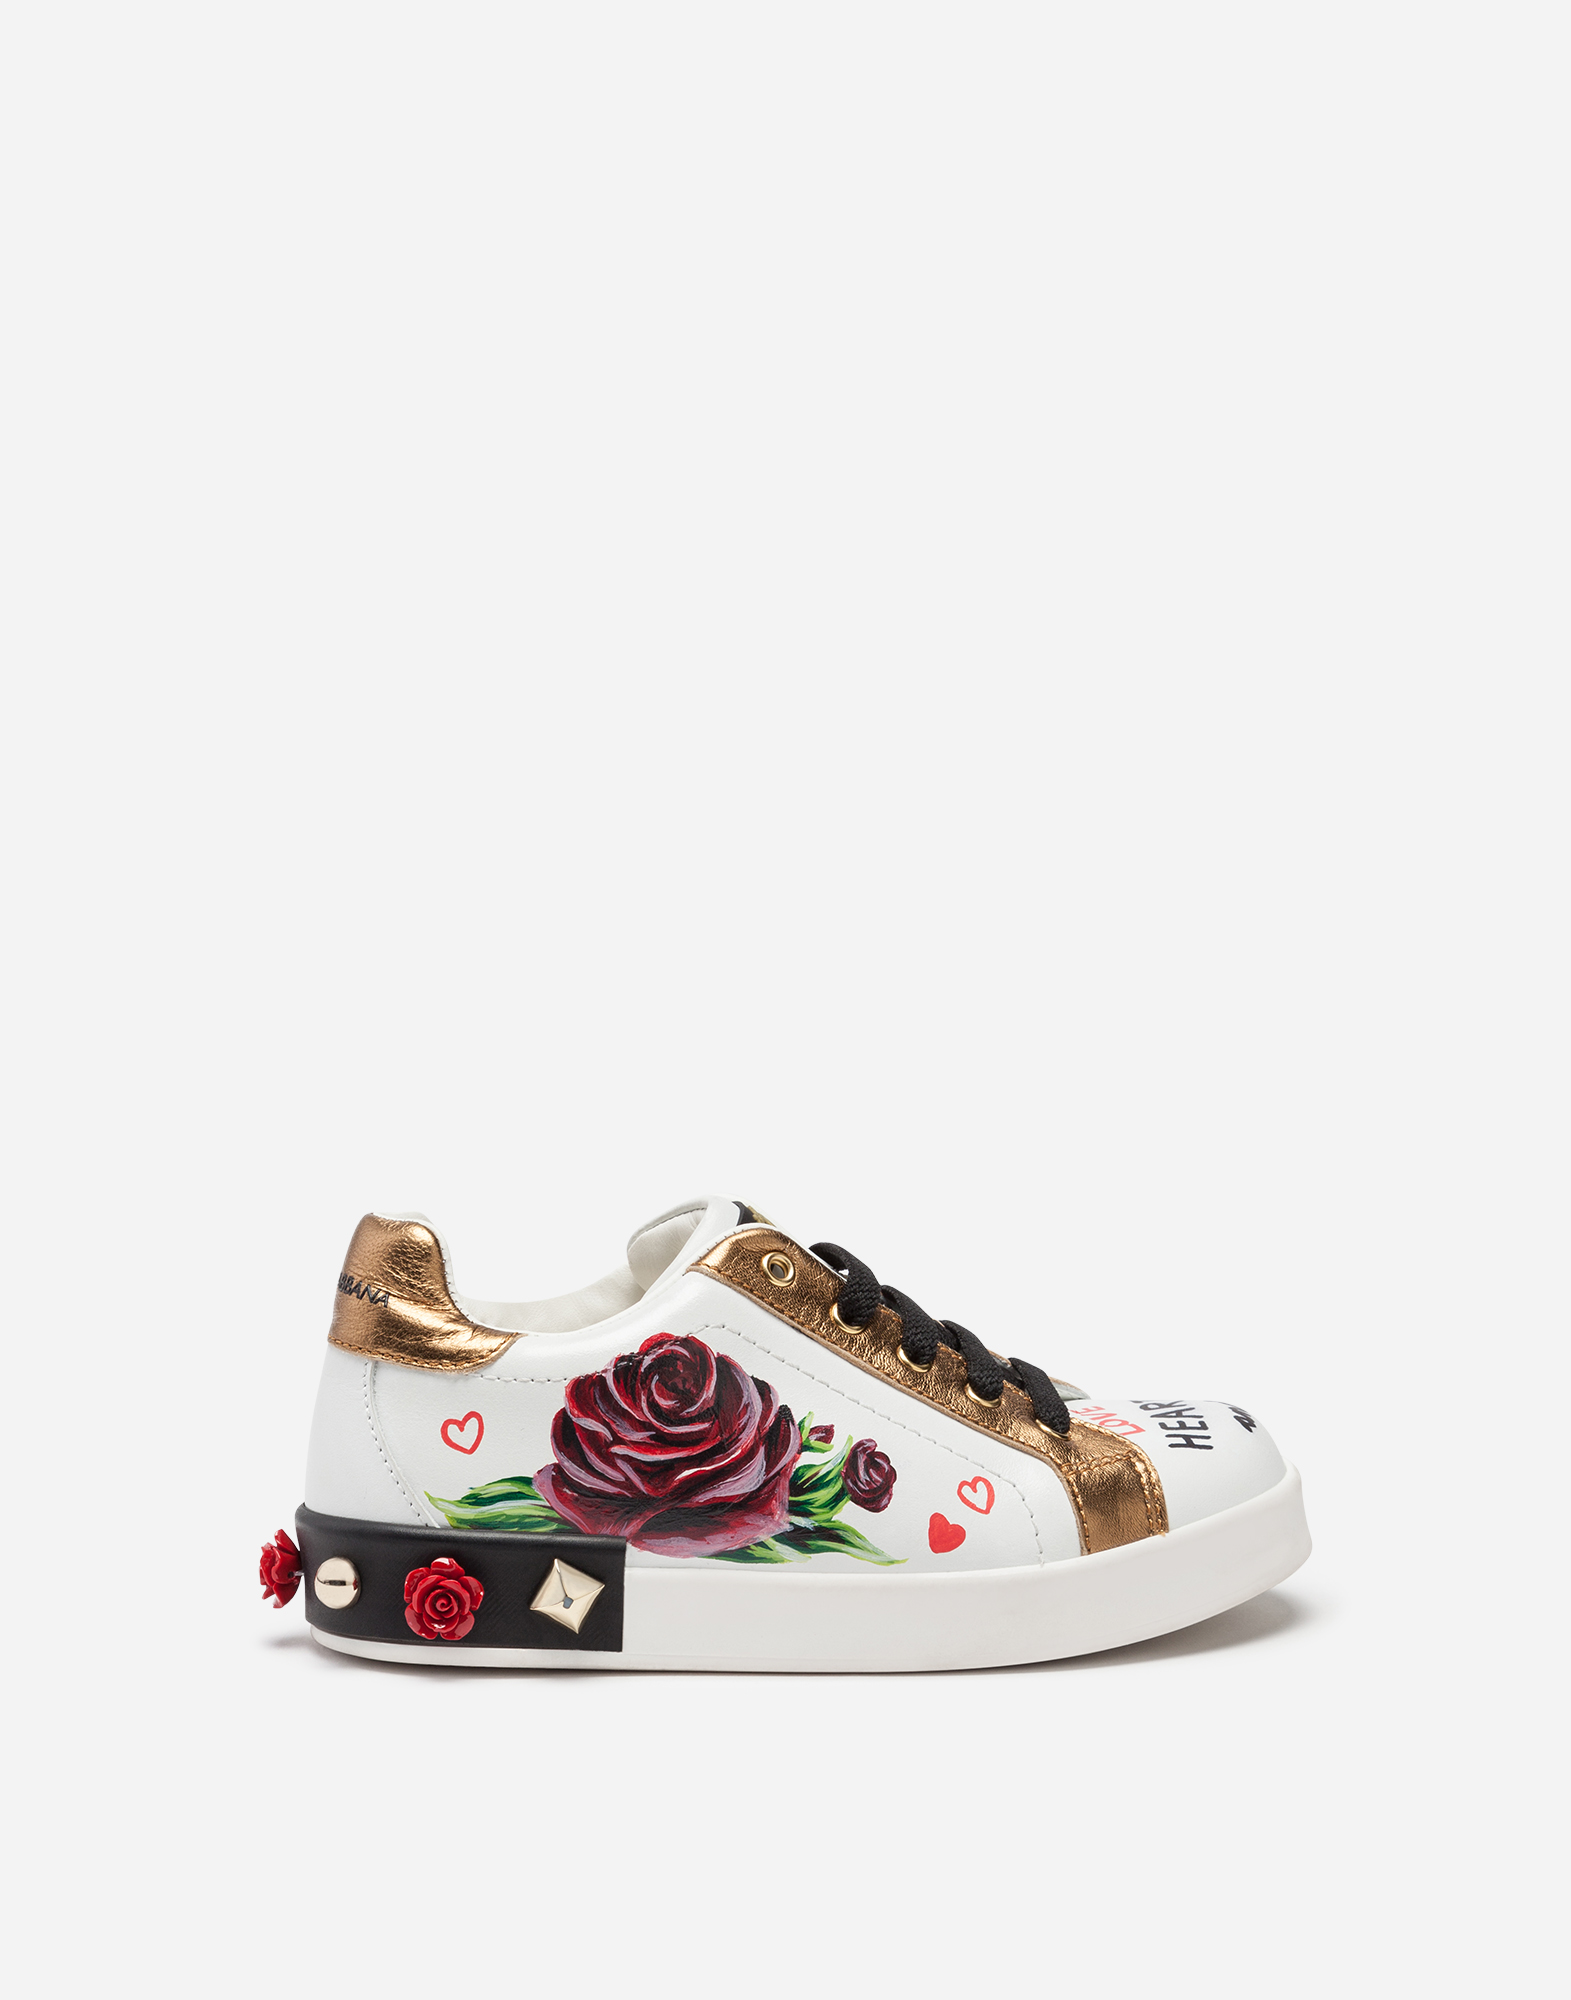 Dolce & Gabbana PORTOFINO SNEAKERS IN PRINTED NAPPA LEATHER